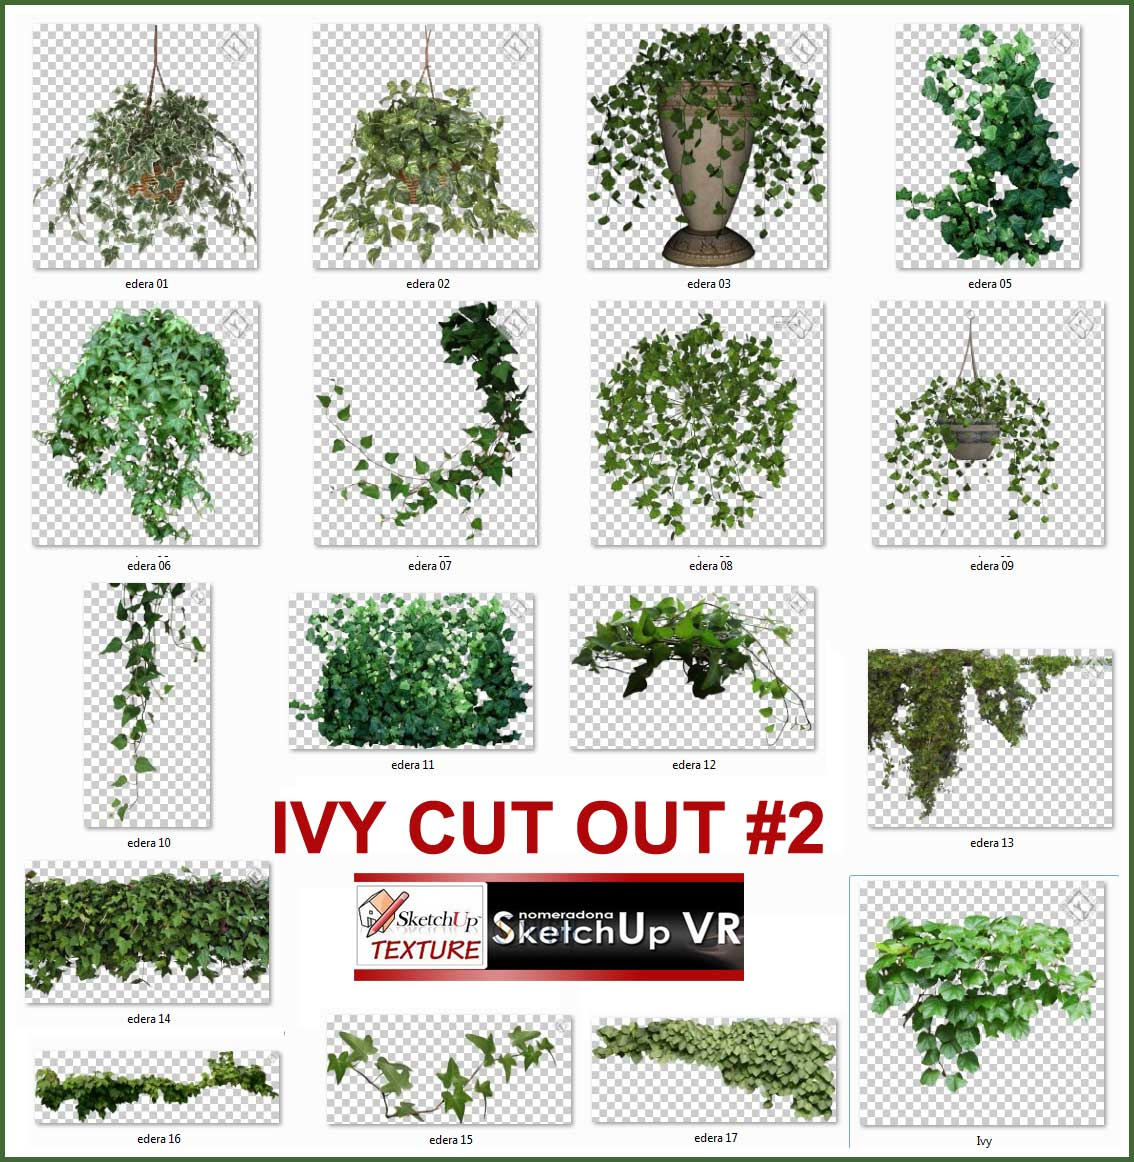 sketchup texture ivy cut out png collection 2